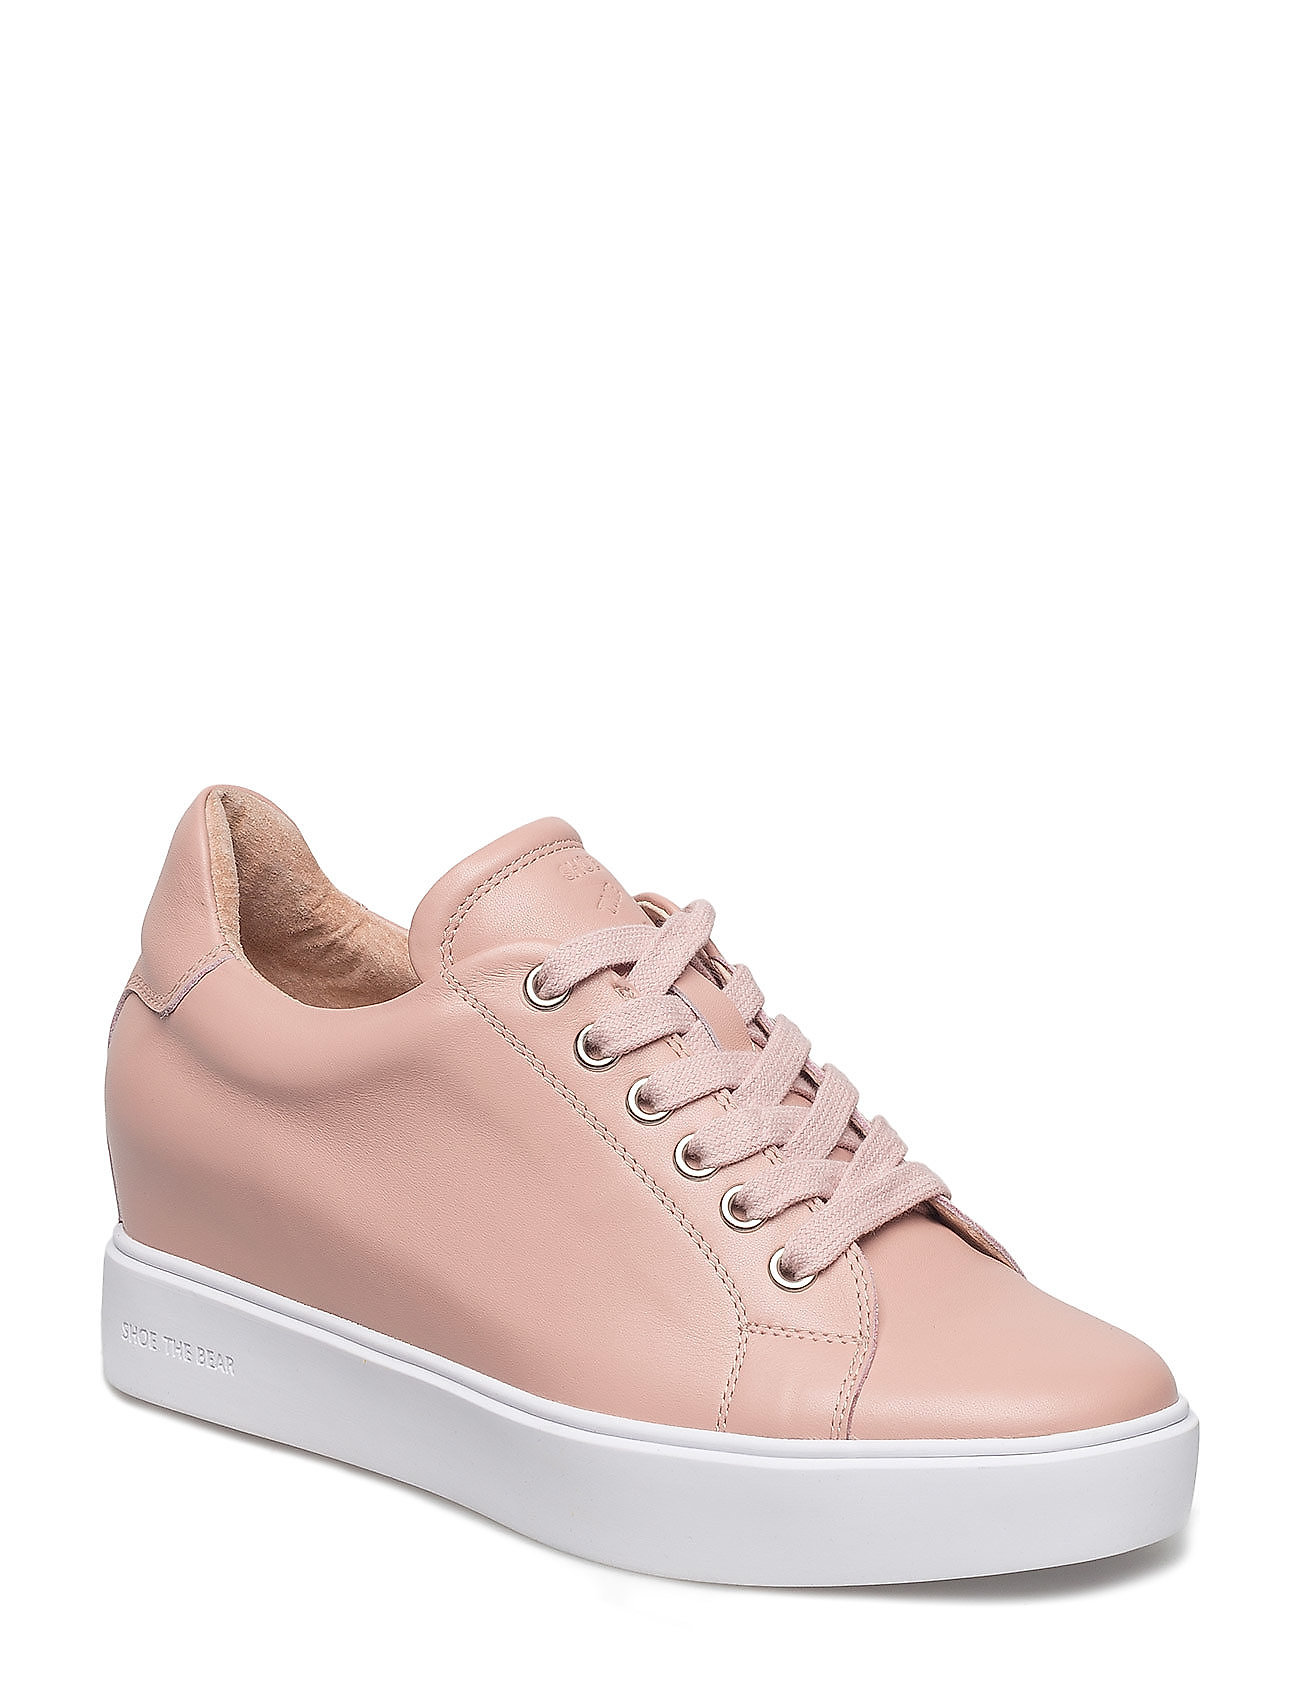 Image of Ava L Low-top Sneakers Lyserød Shoe The Bear (3333152193)